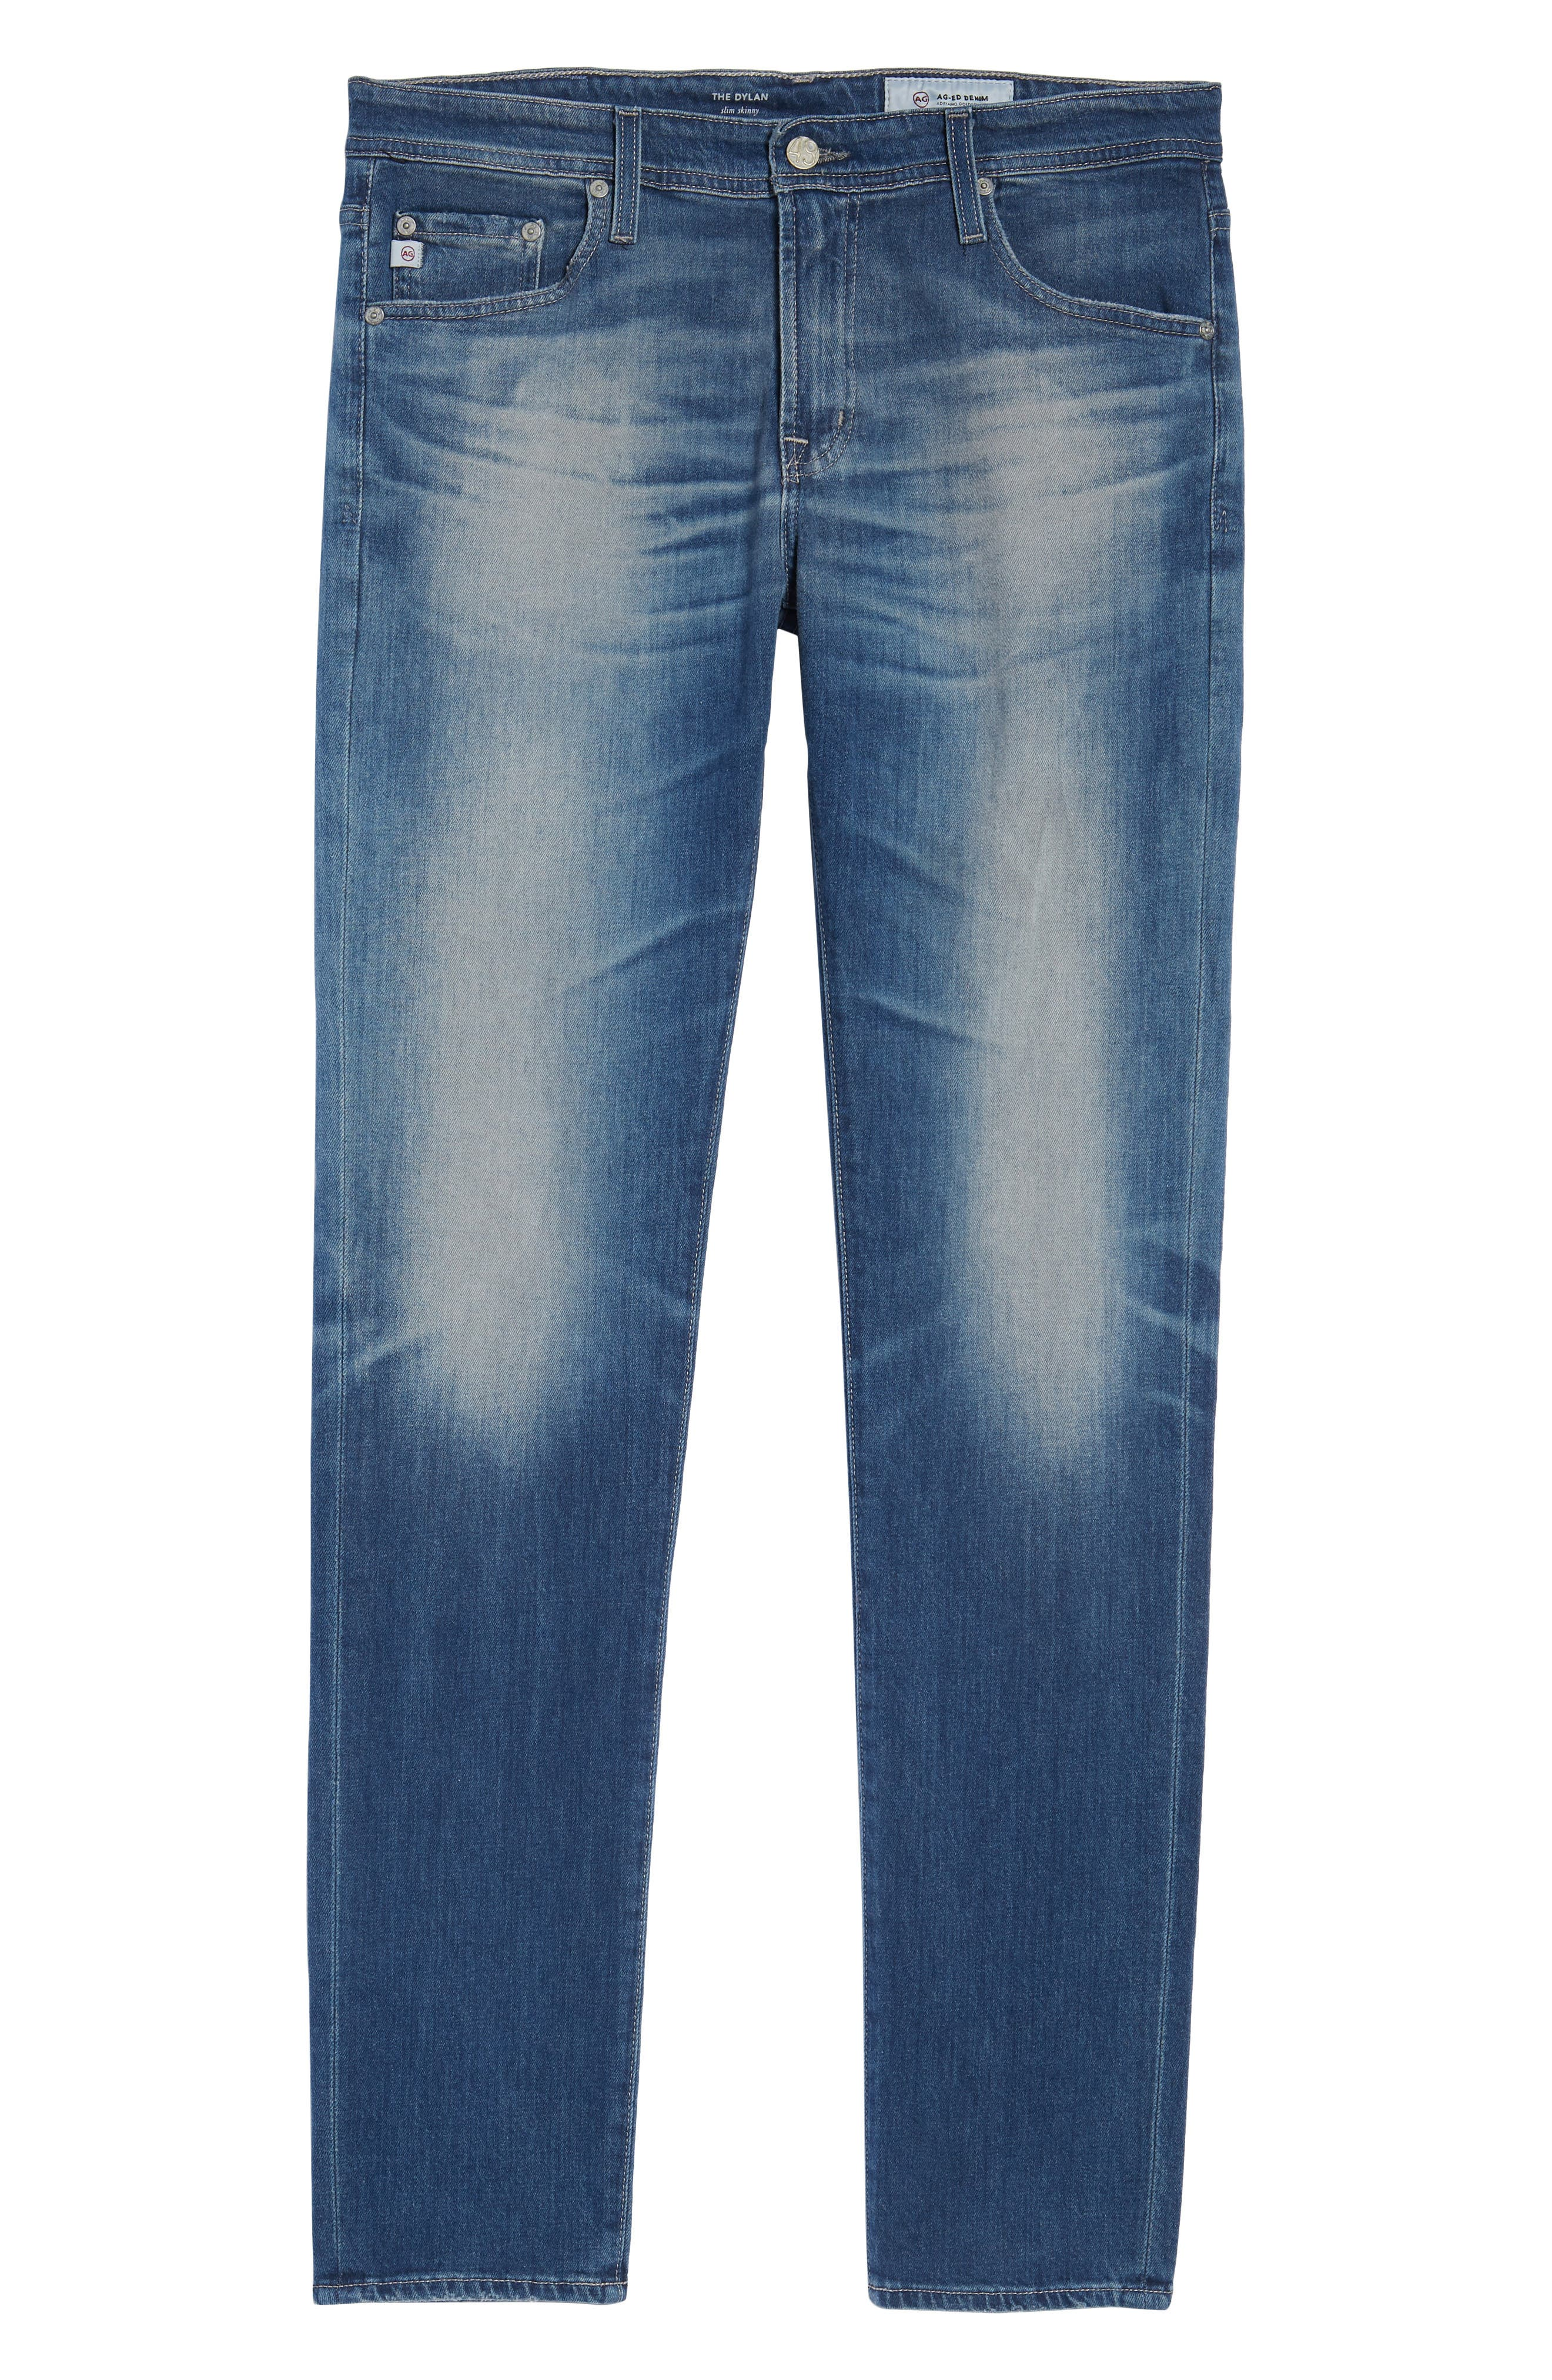 Dylan Skinny Fit Jeans,                             Alternate thumbnail 6, color,